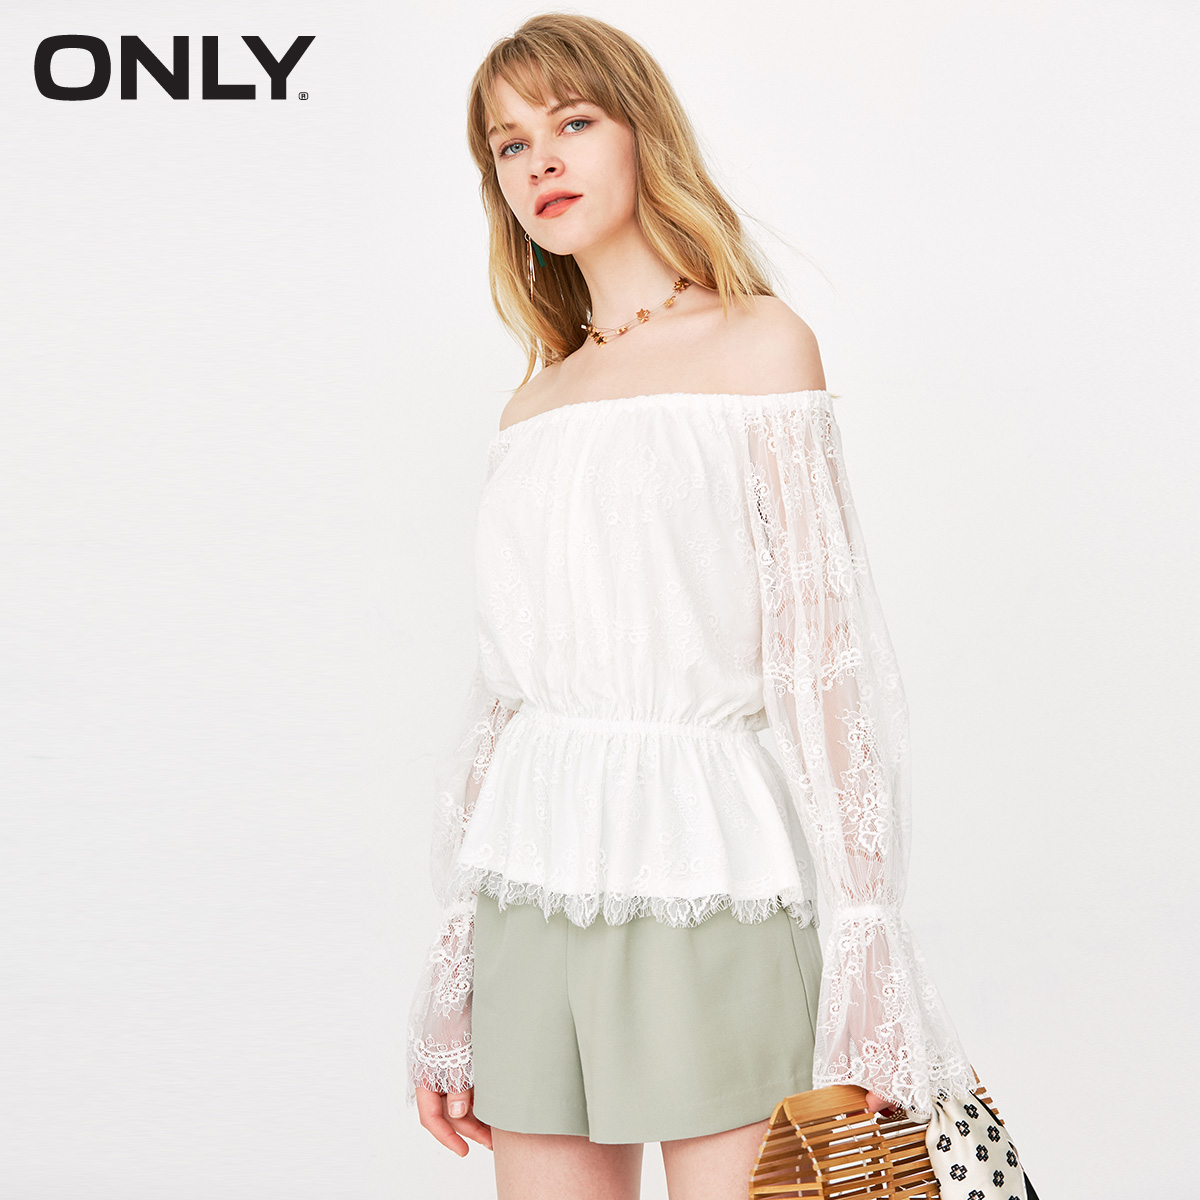 ONLY 2018 Autumn and Winter New Lace Shoulder Horn Sleeve T-shirt Female   118102532